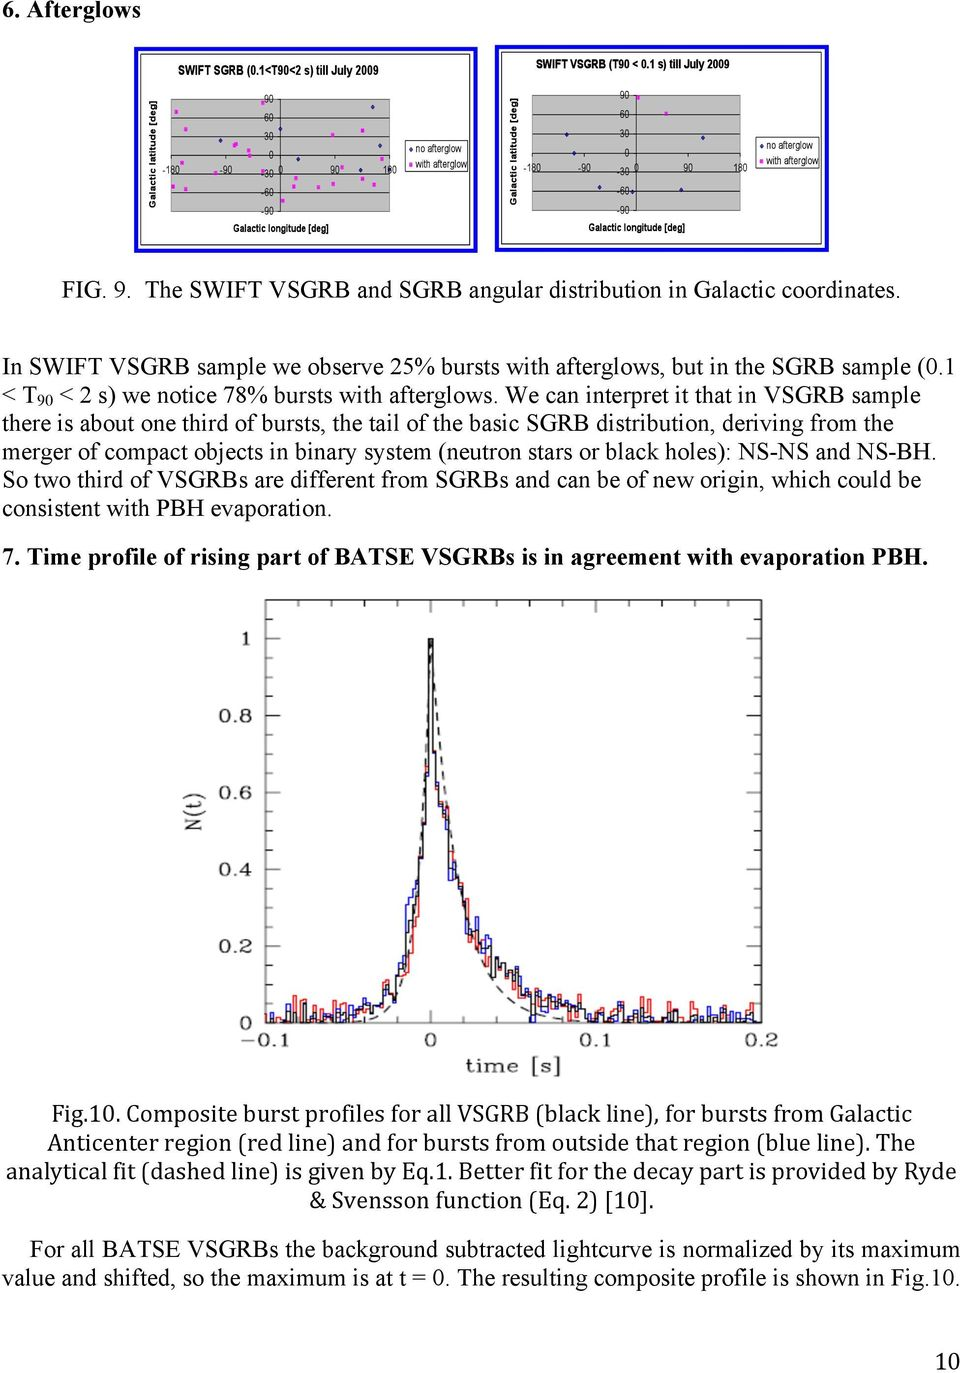 We can interpret it that in VSGRB sample there is about one third of bursts, the tail of the basic SGRB distribution, deriving from the merger of compact objects in binary system (neutron stars or